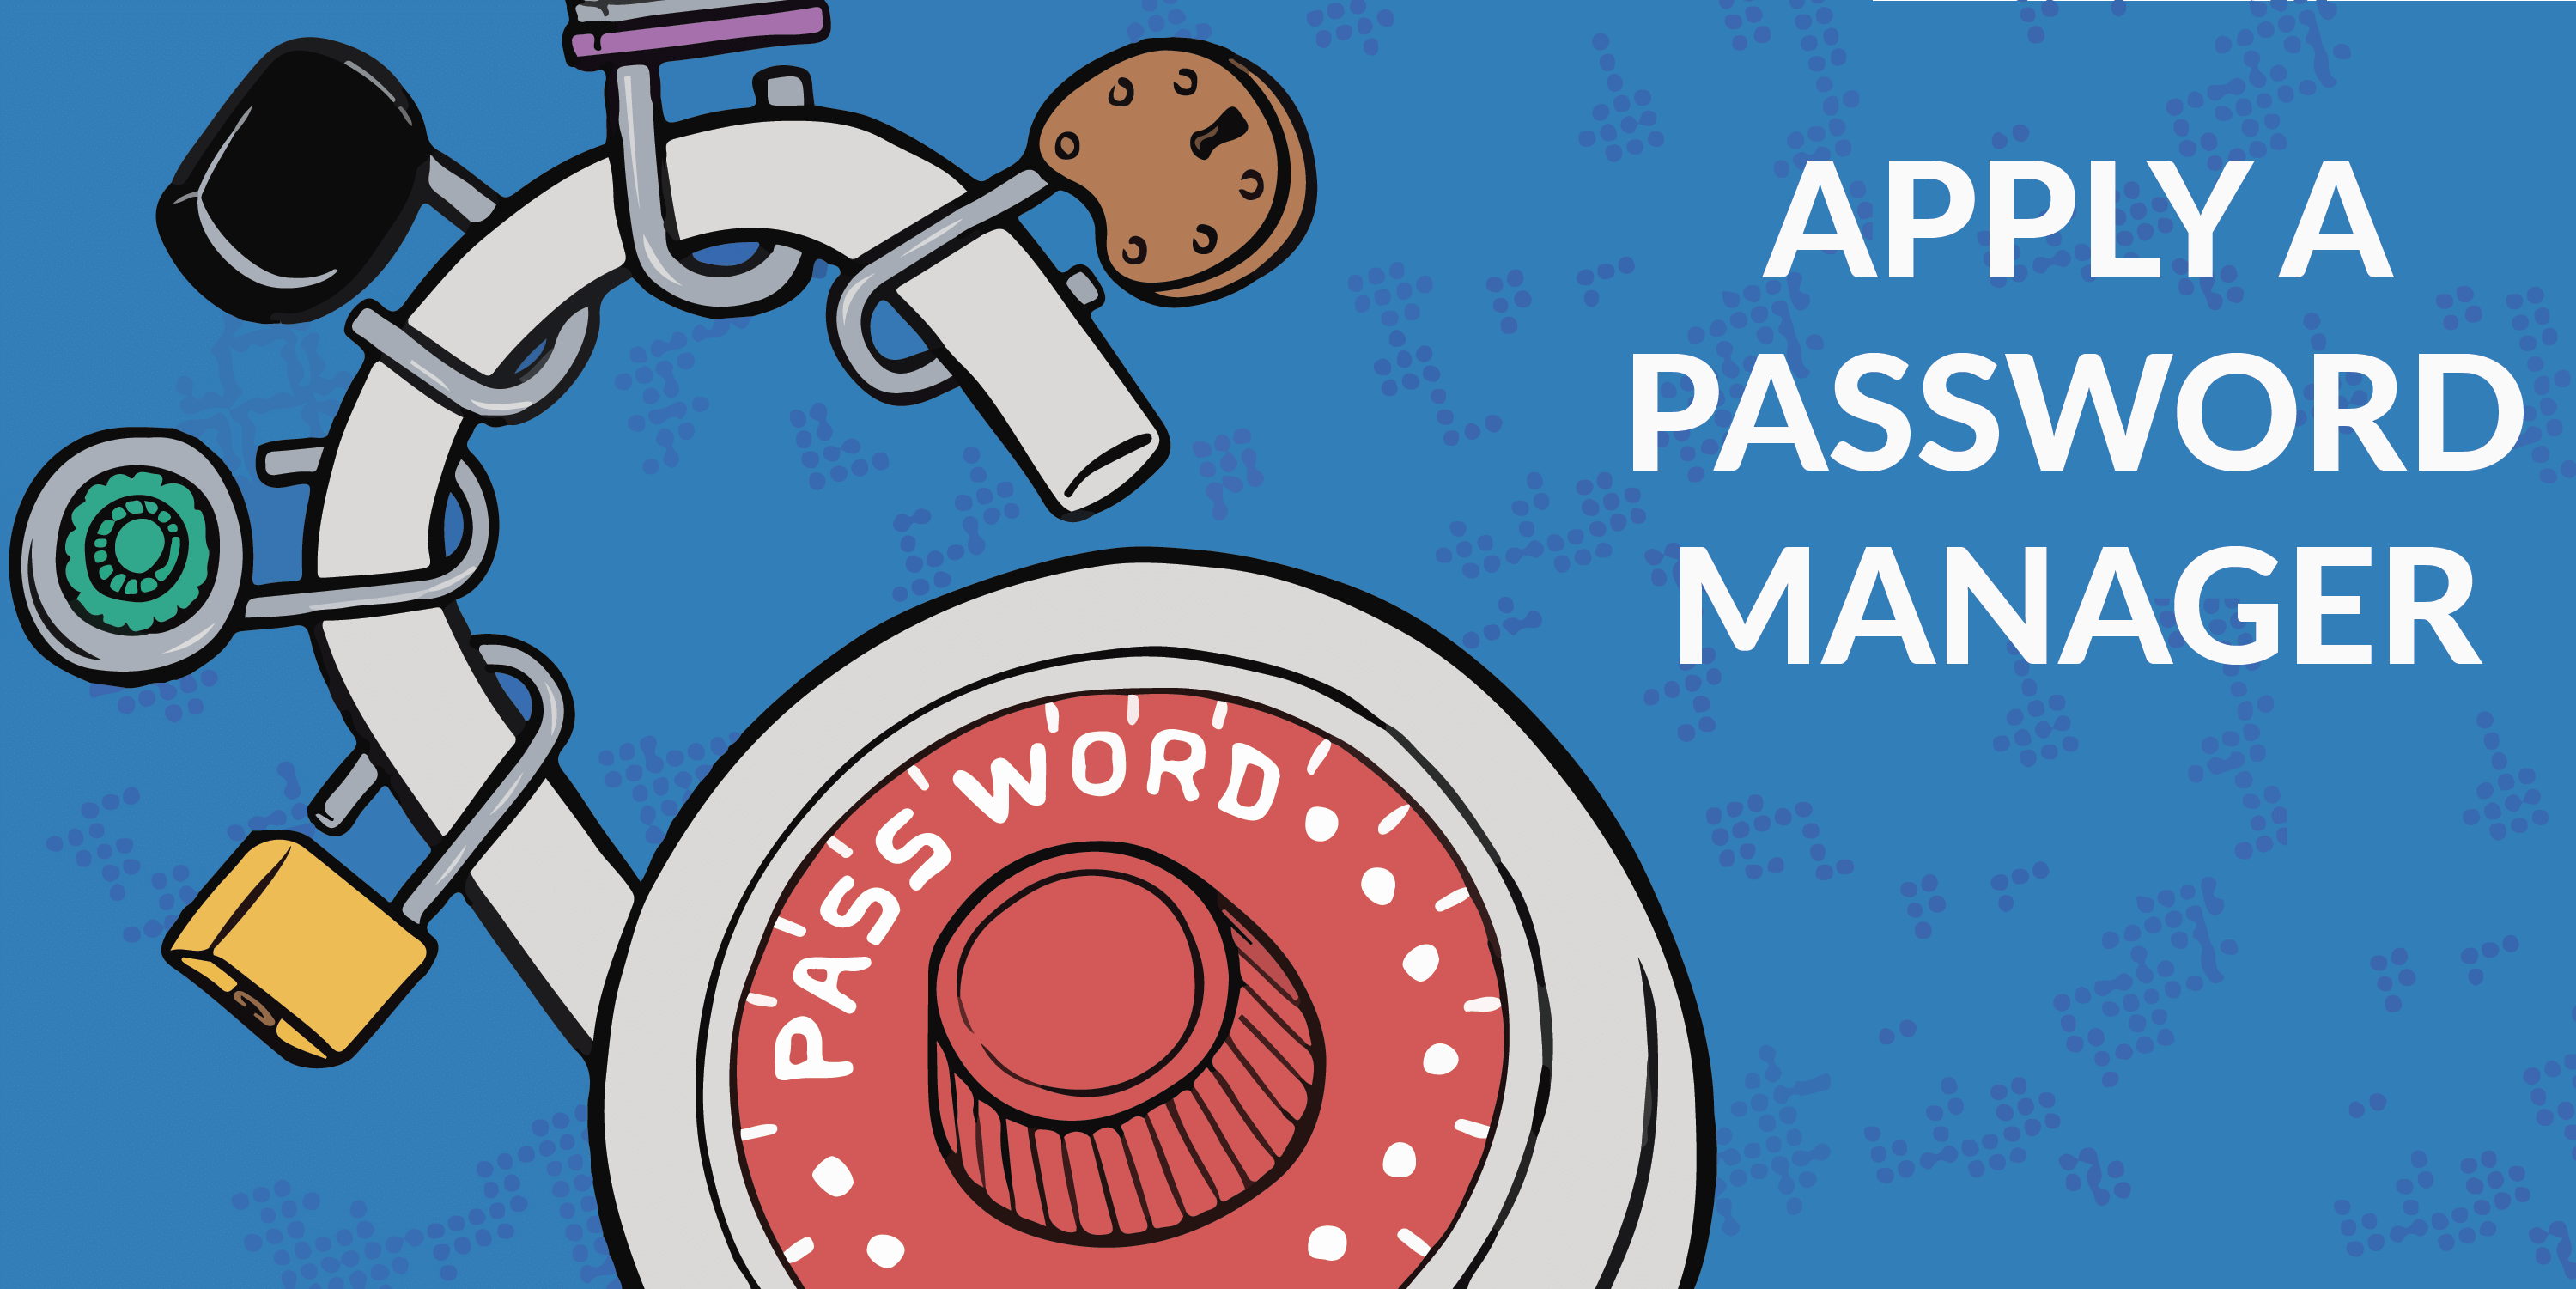 Apply a Password Manager